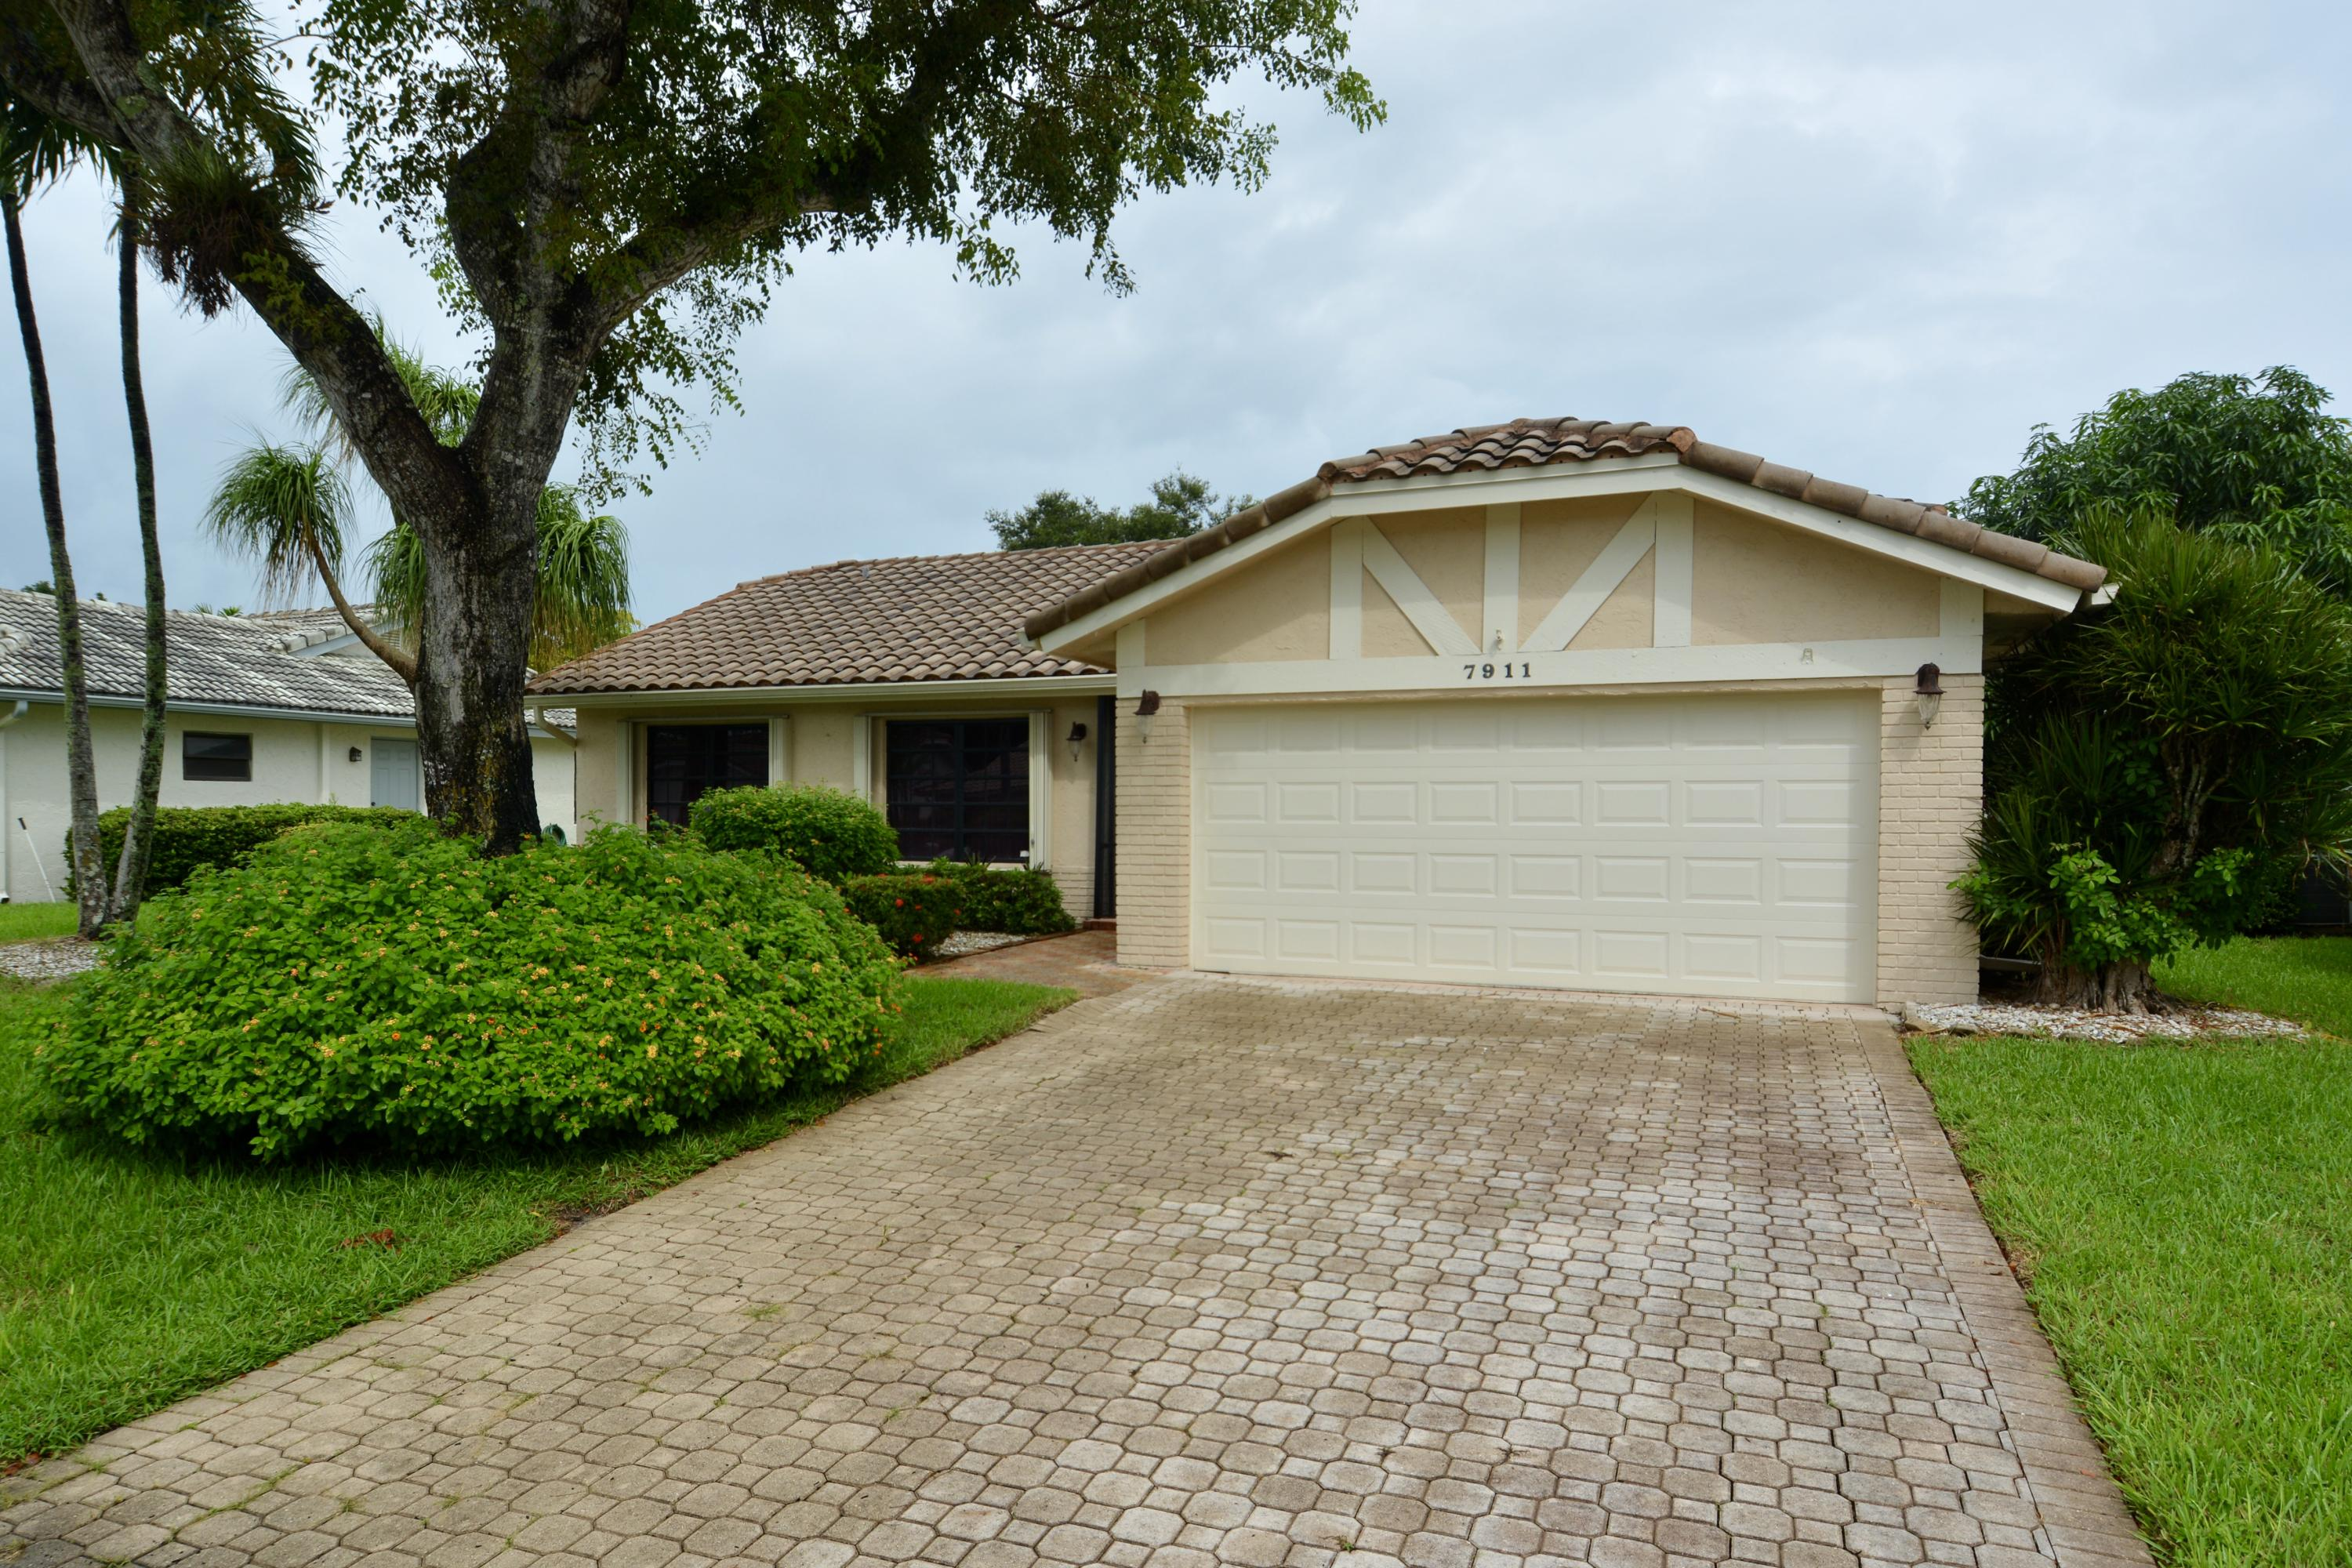 Home for sale in CLOVERFIELD Boca Raton Florida